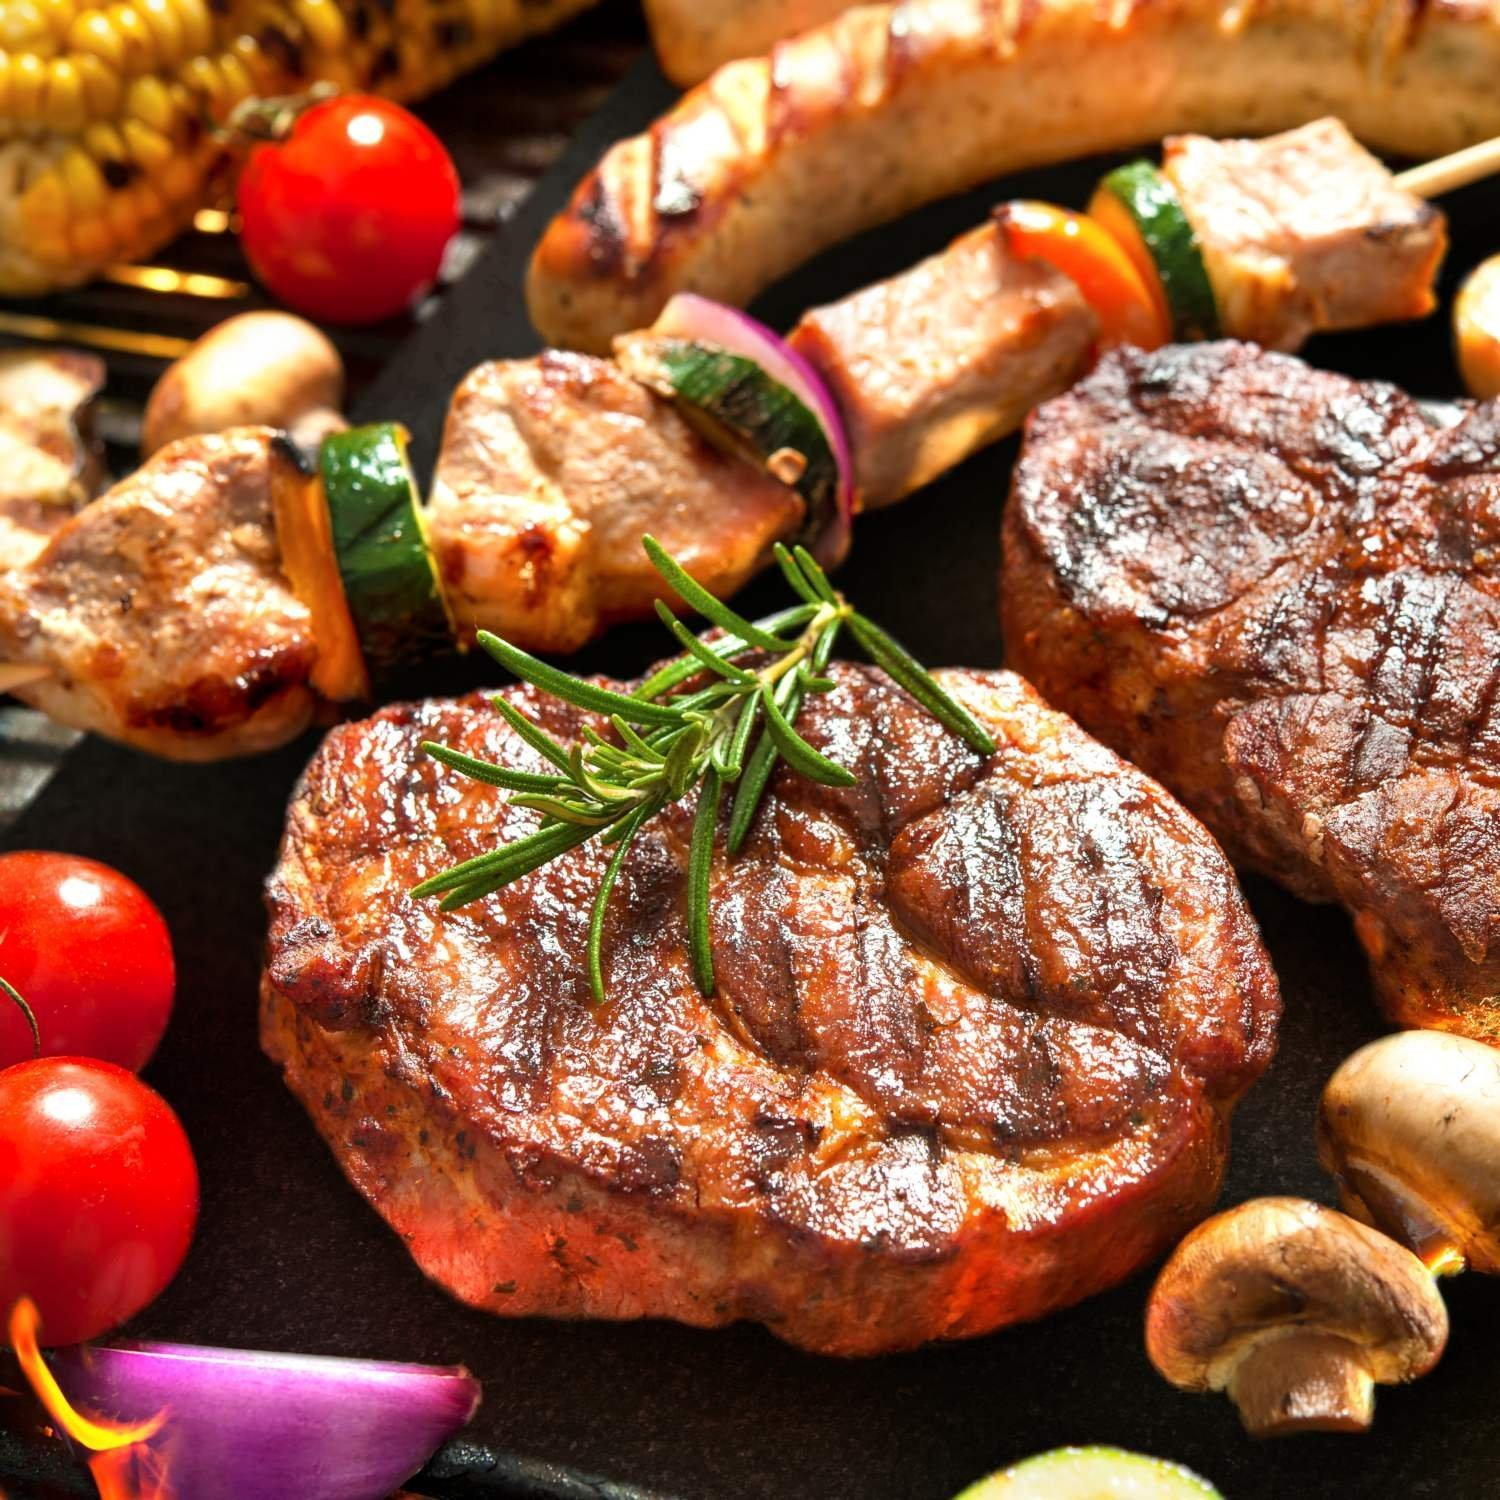 Barbecue mat (Set of 5), Grilldom and Reusable BBQ Grill Mat, Teflon Non-stick 0.2mm, 40x33cm by Grilldom (Image #4)